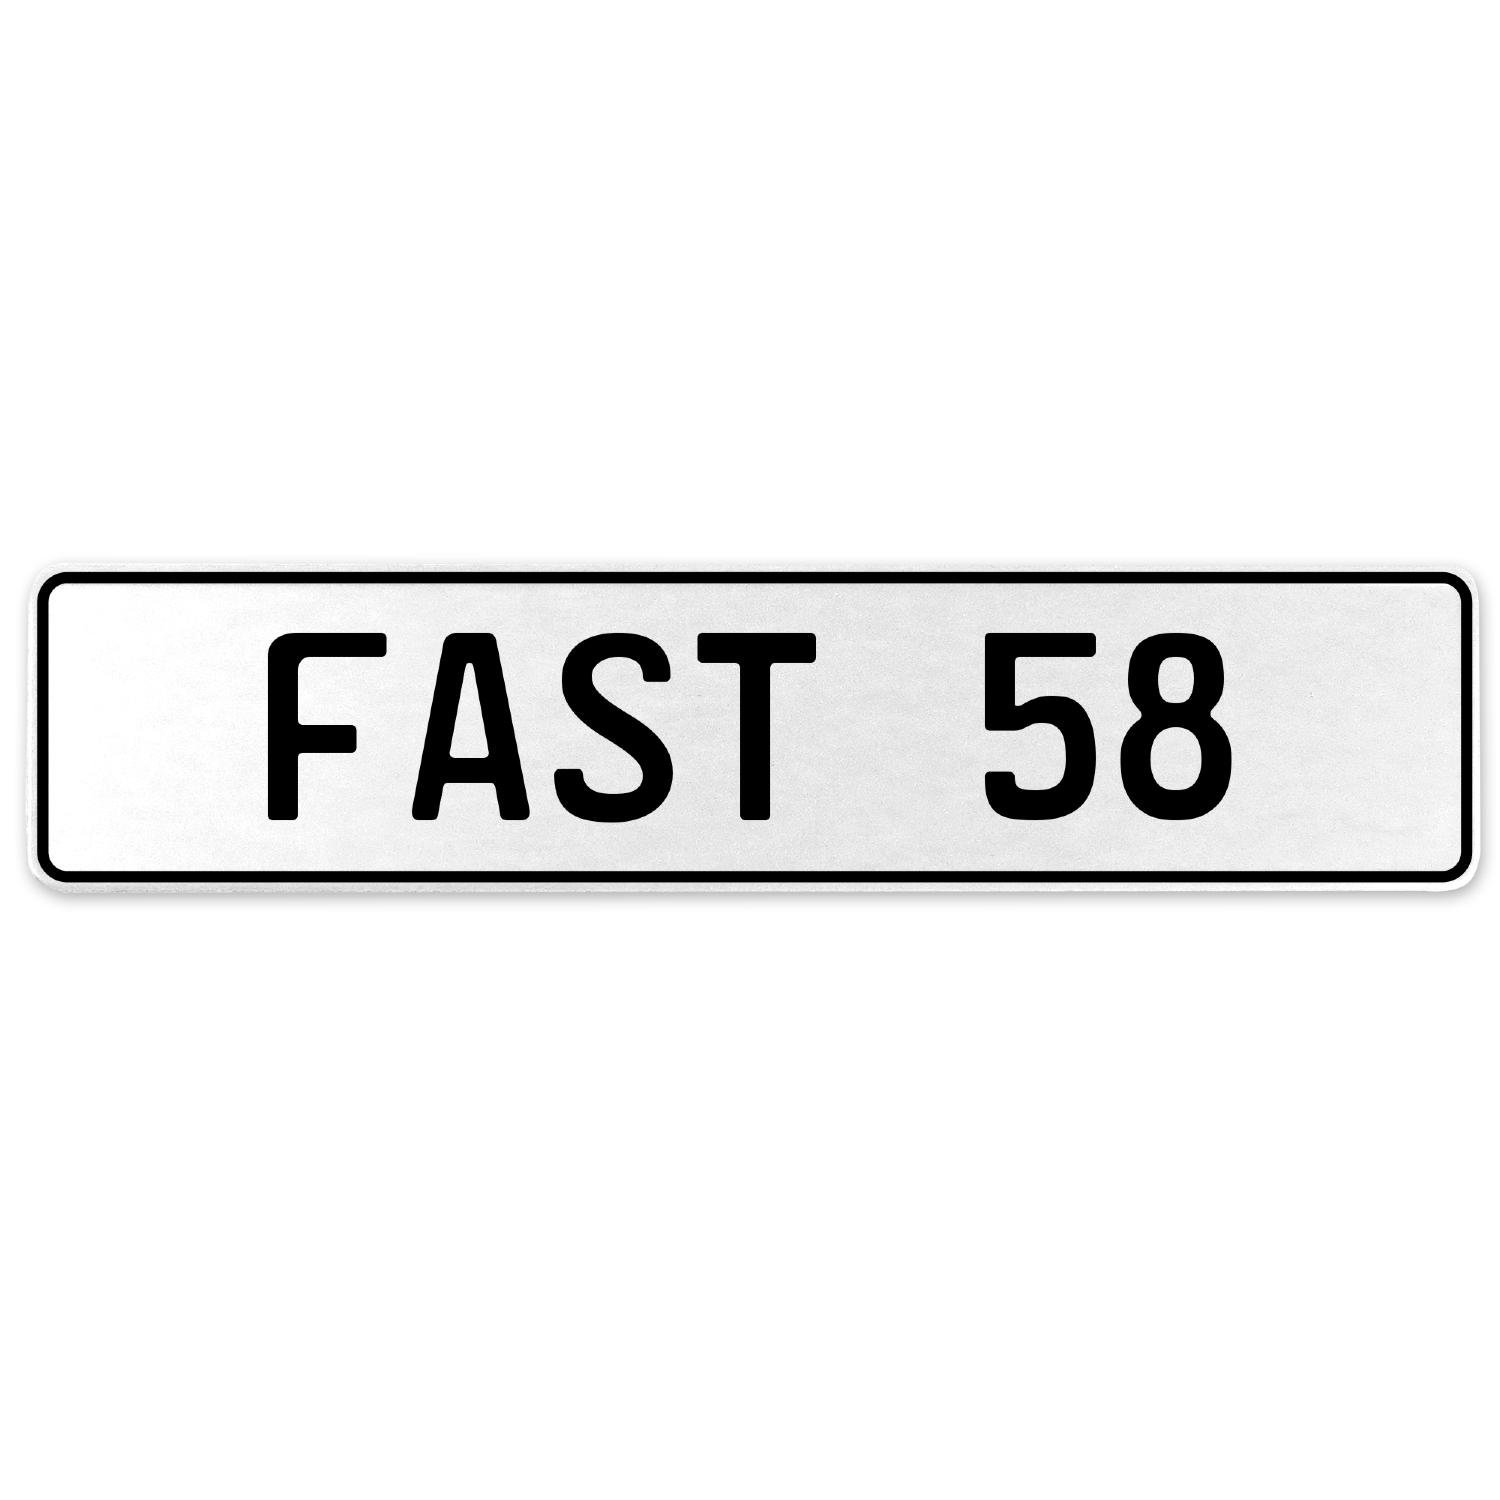 Vintage Parts 557328 Fast 58 White Stamped Aluminum European License Plate